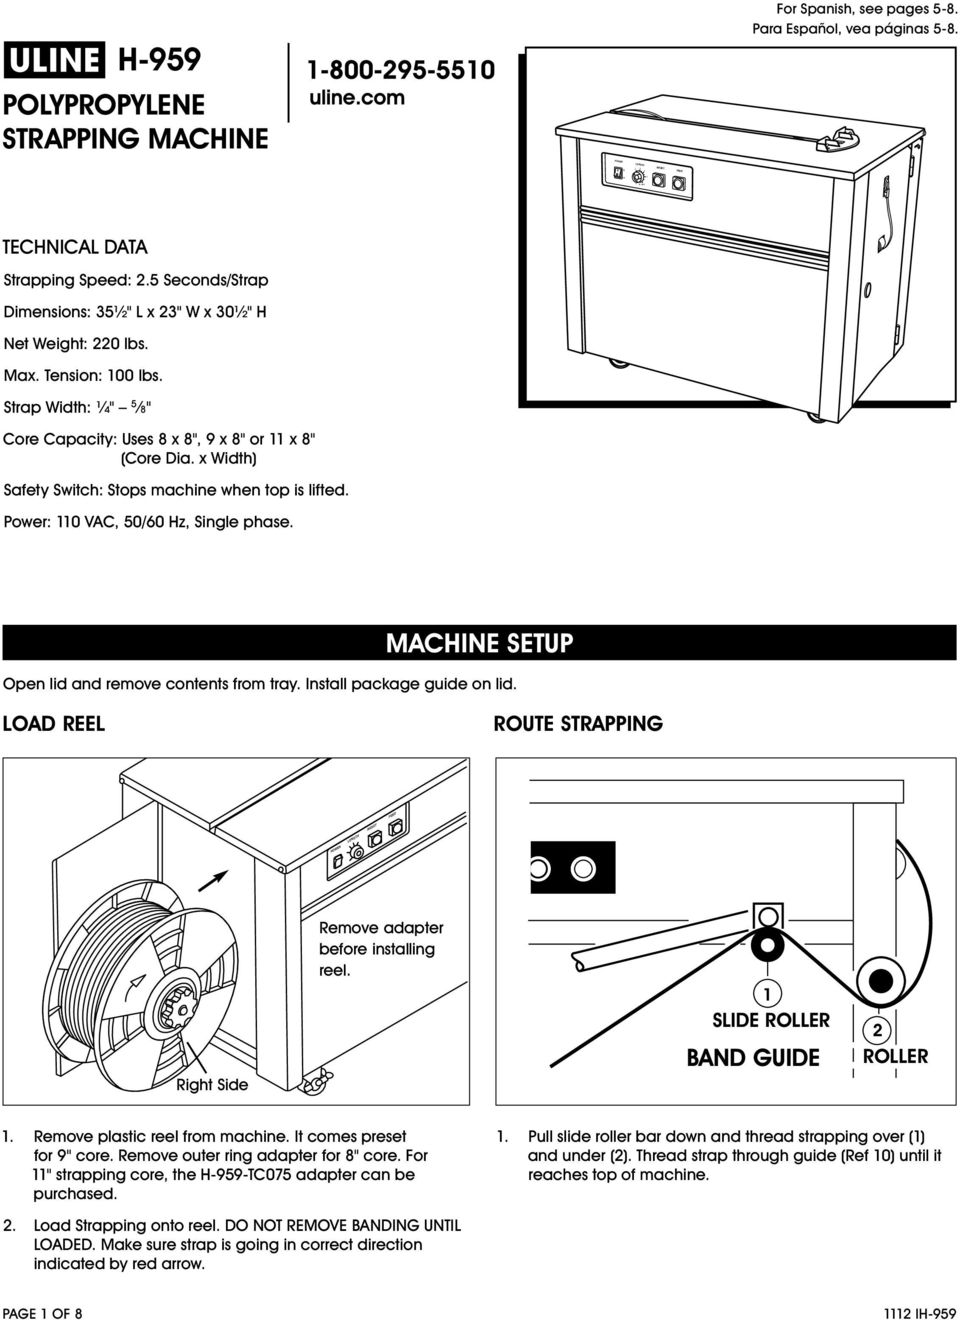 machine setup Open lid and remove contents from tray. Install package guide on lid. LOAD REEL ROUTE STRAPPING POWER Right Side Remove adapter before installing reel. SLIDE ROLLER BAND GUIDE ROLLER.